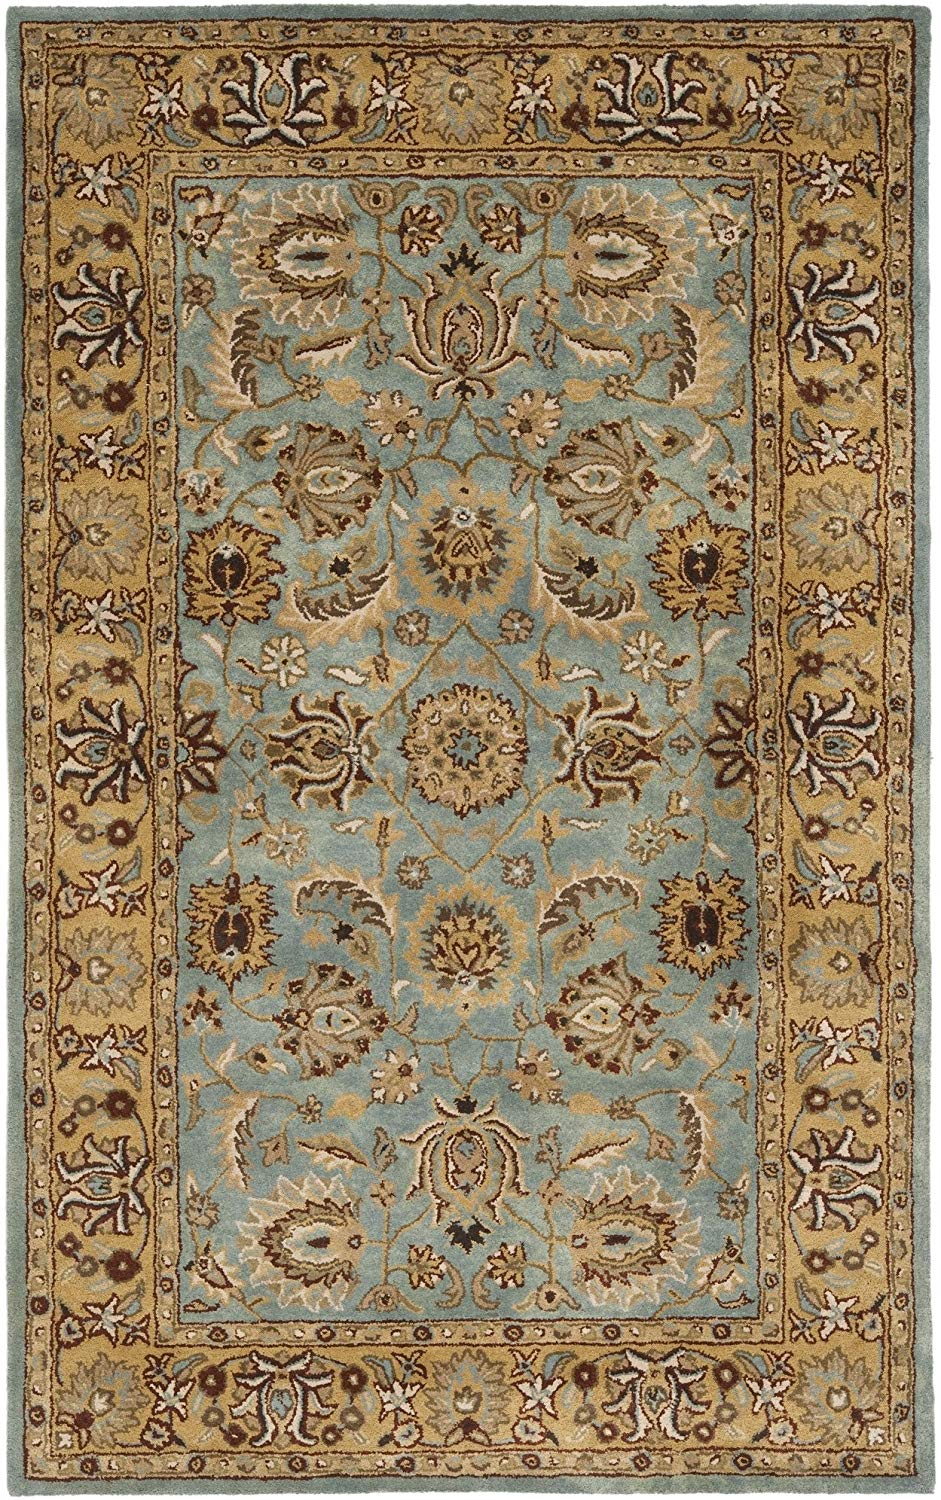 Safavieh Heritage Collection HG958A Handcrafted Traditional Oriental Blue and Gold Wool Area Rug (3in x 5in)